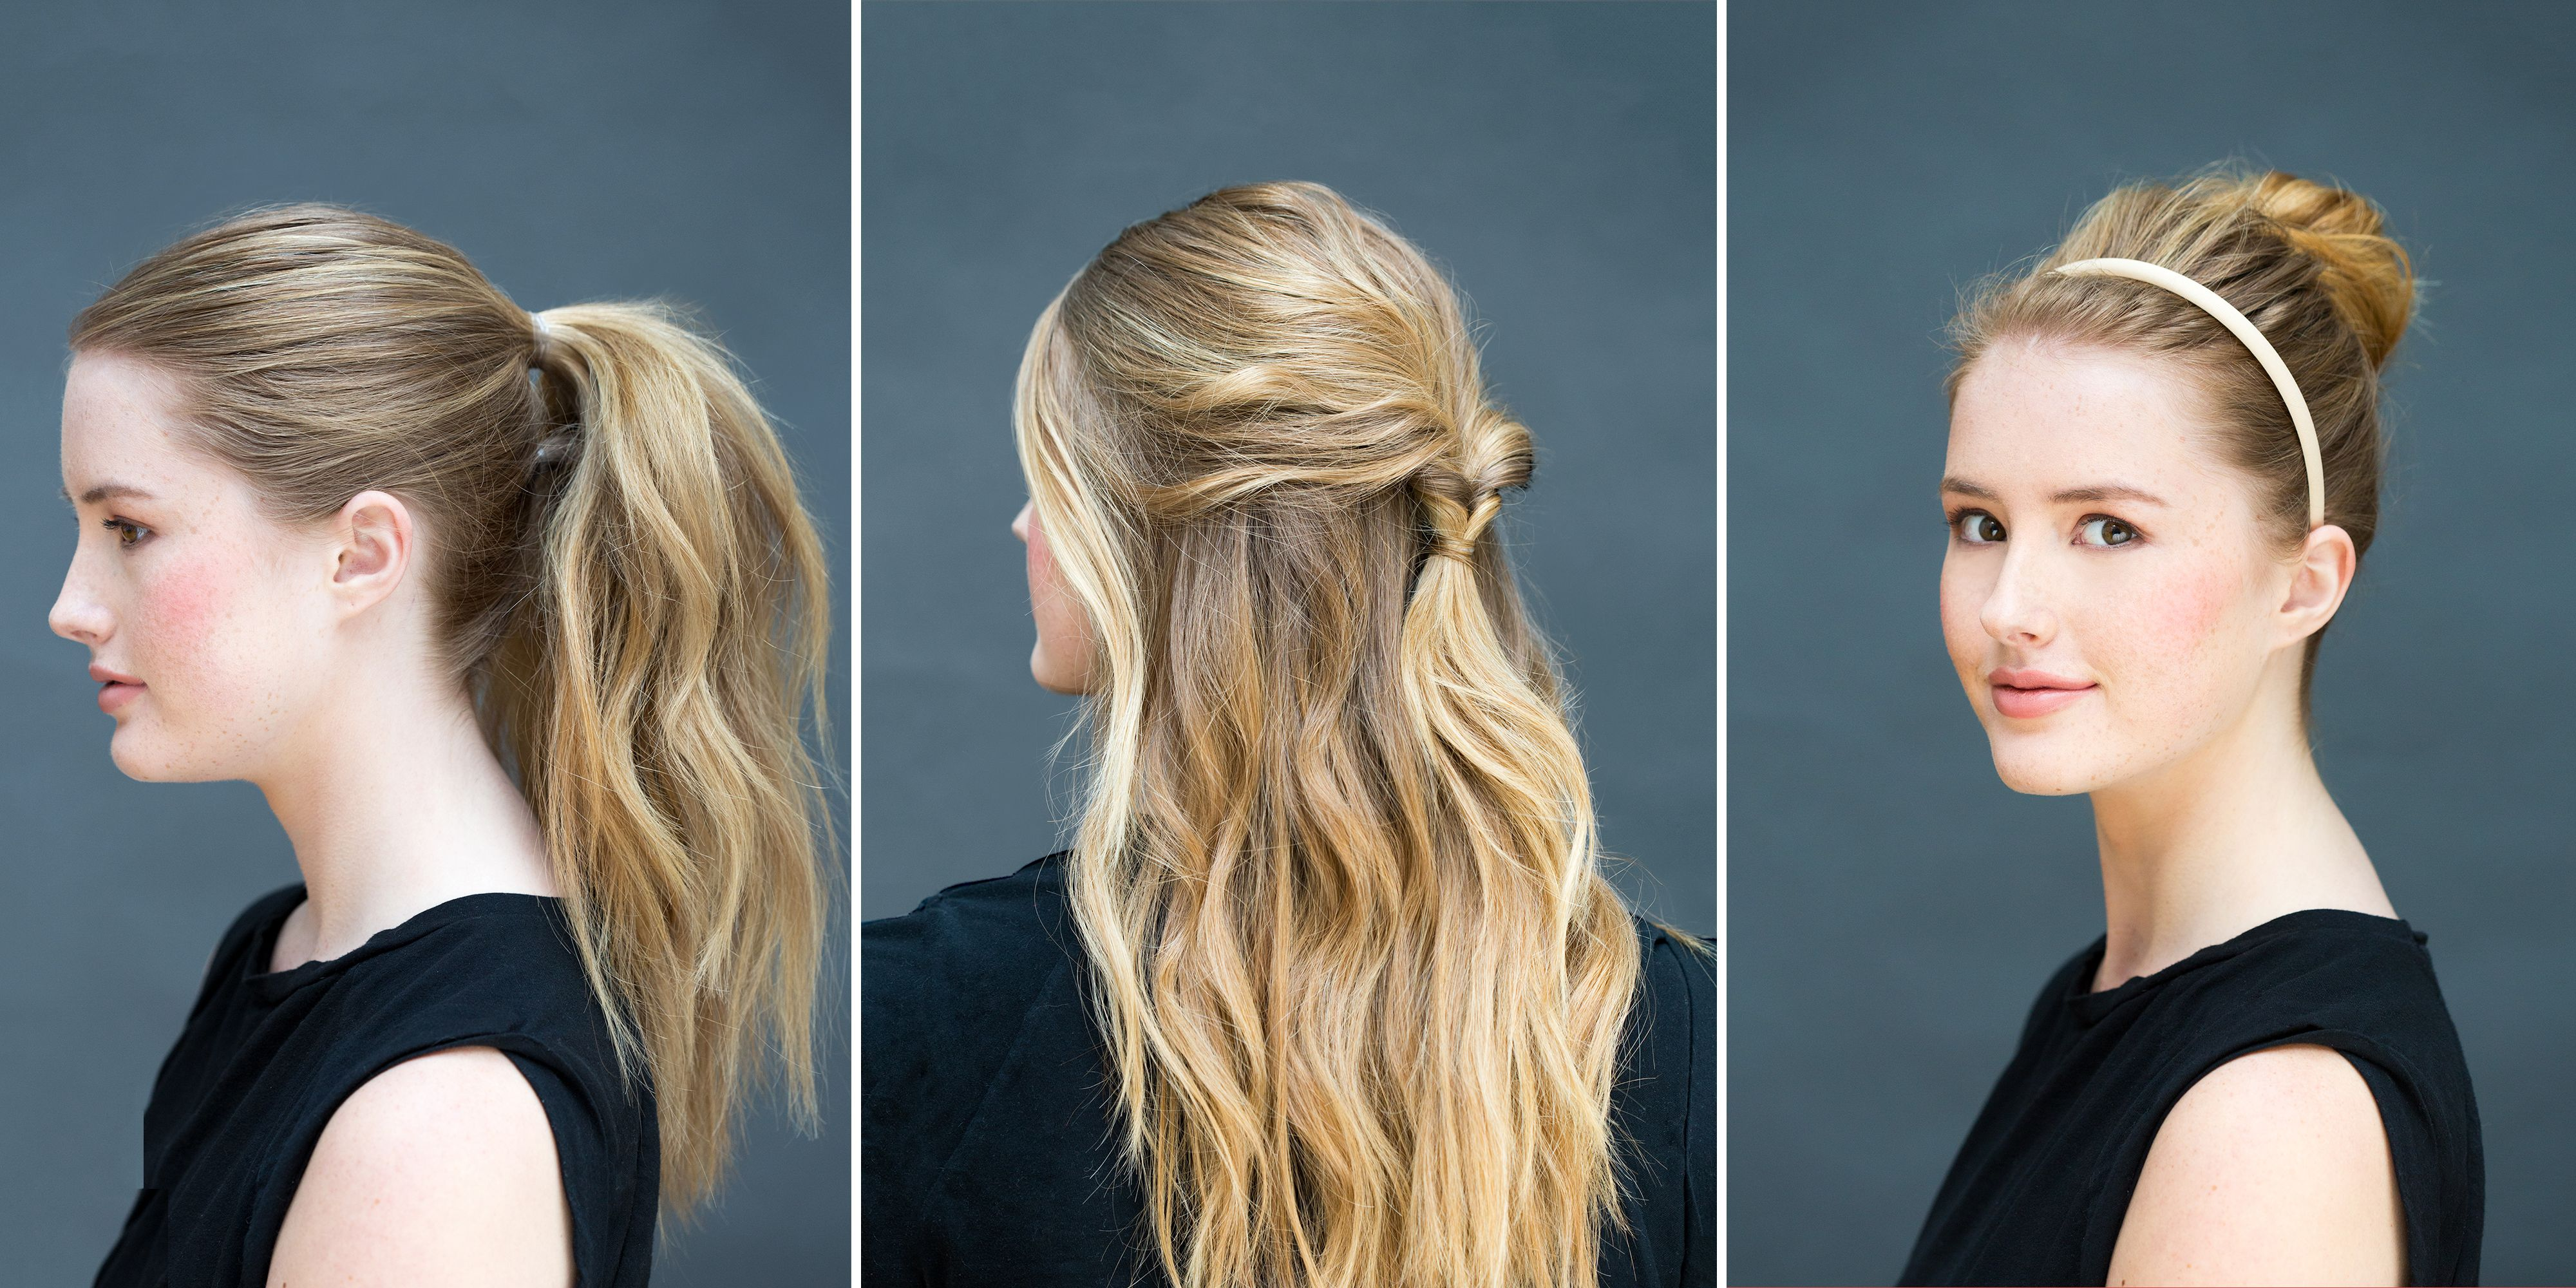 10 Easy Hairstyles You Can Do In Seconds